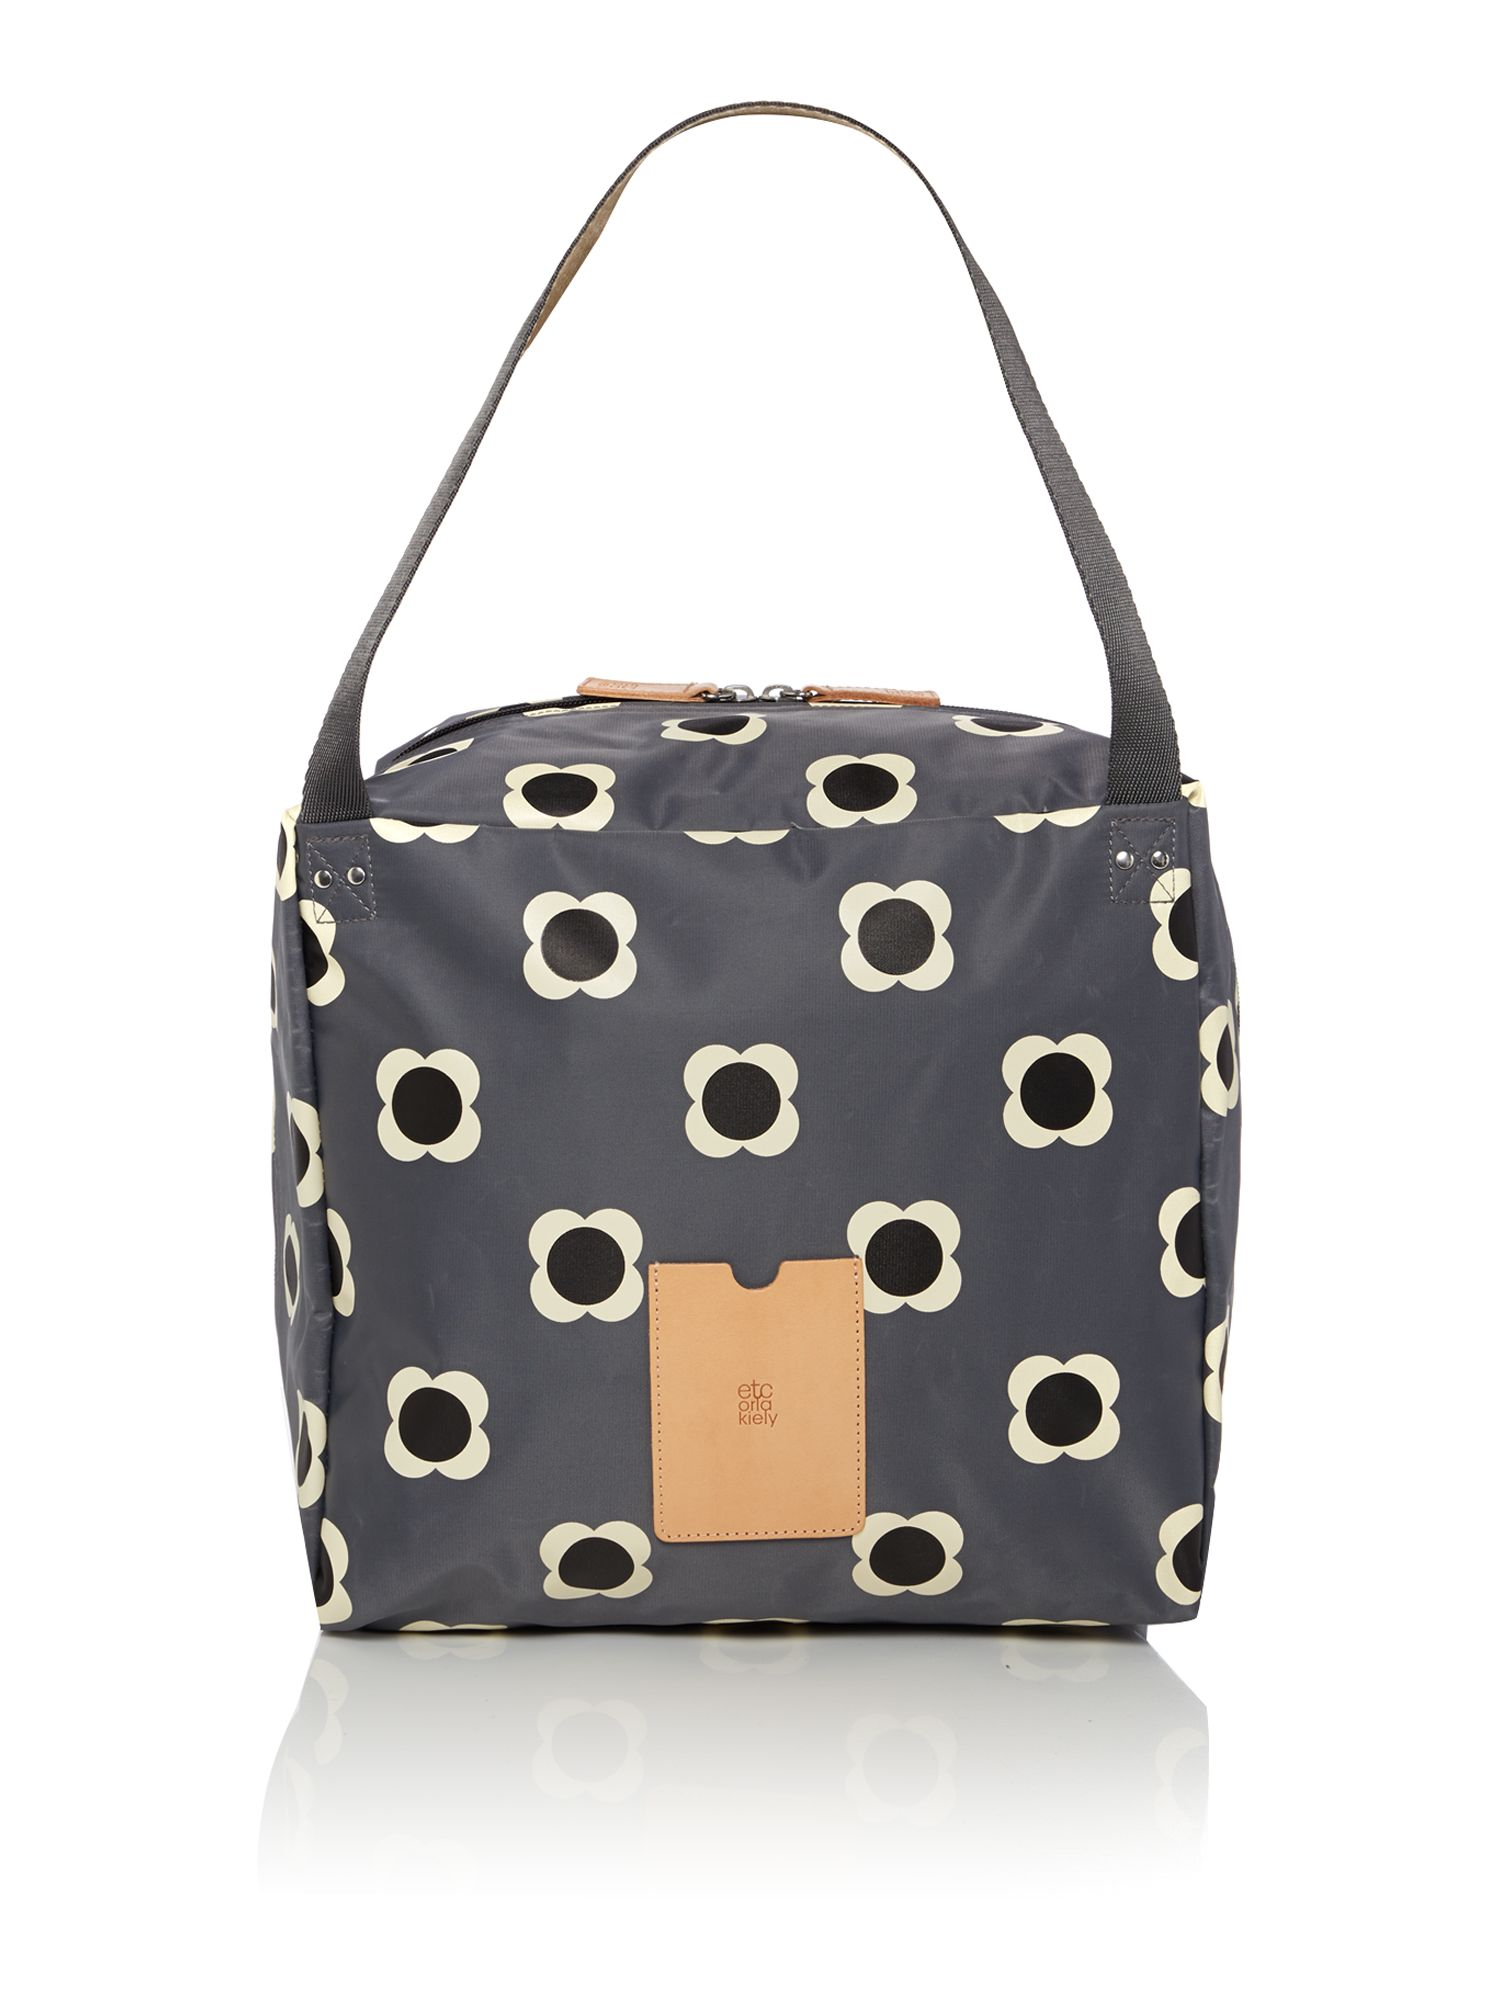 orla kiely flower spot grey large tote bag in gray lyst. Black Bedroom Furniture Sets. Home Design Ideas